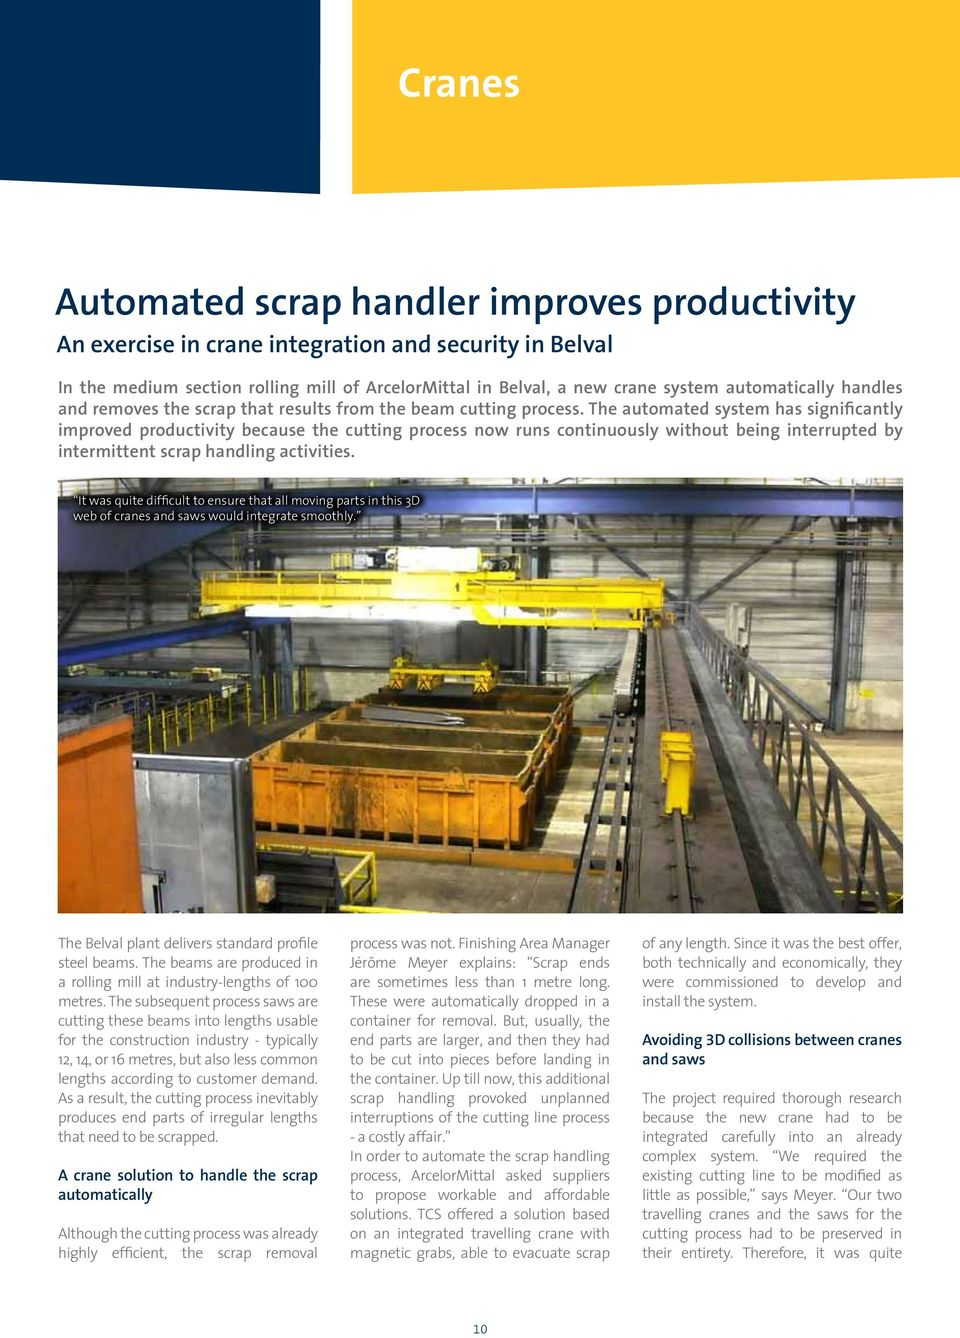 The automated system has significantly improved productivity because the cutting process now runs continuously without being interrupted by intermittent scrap handling activities.